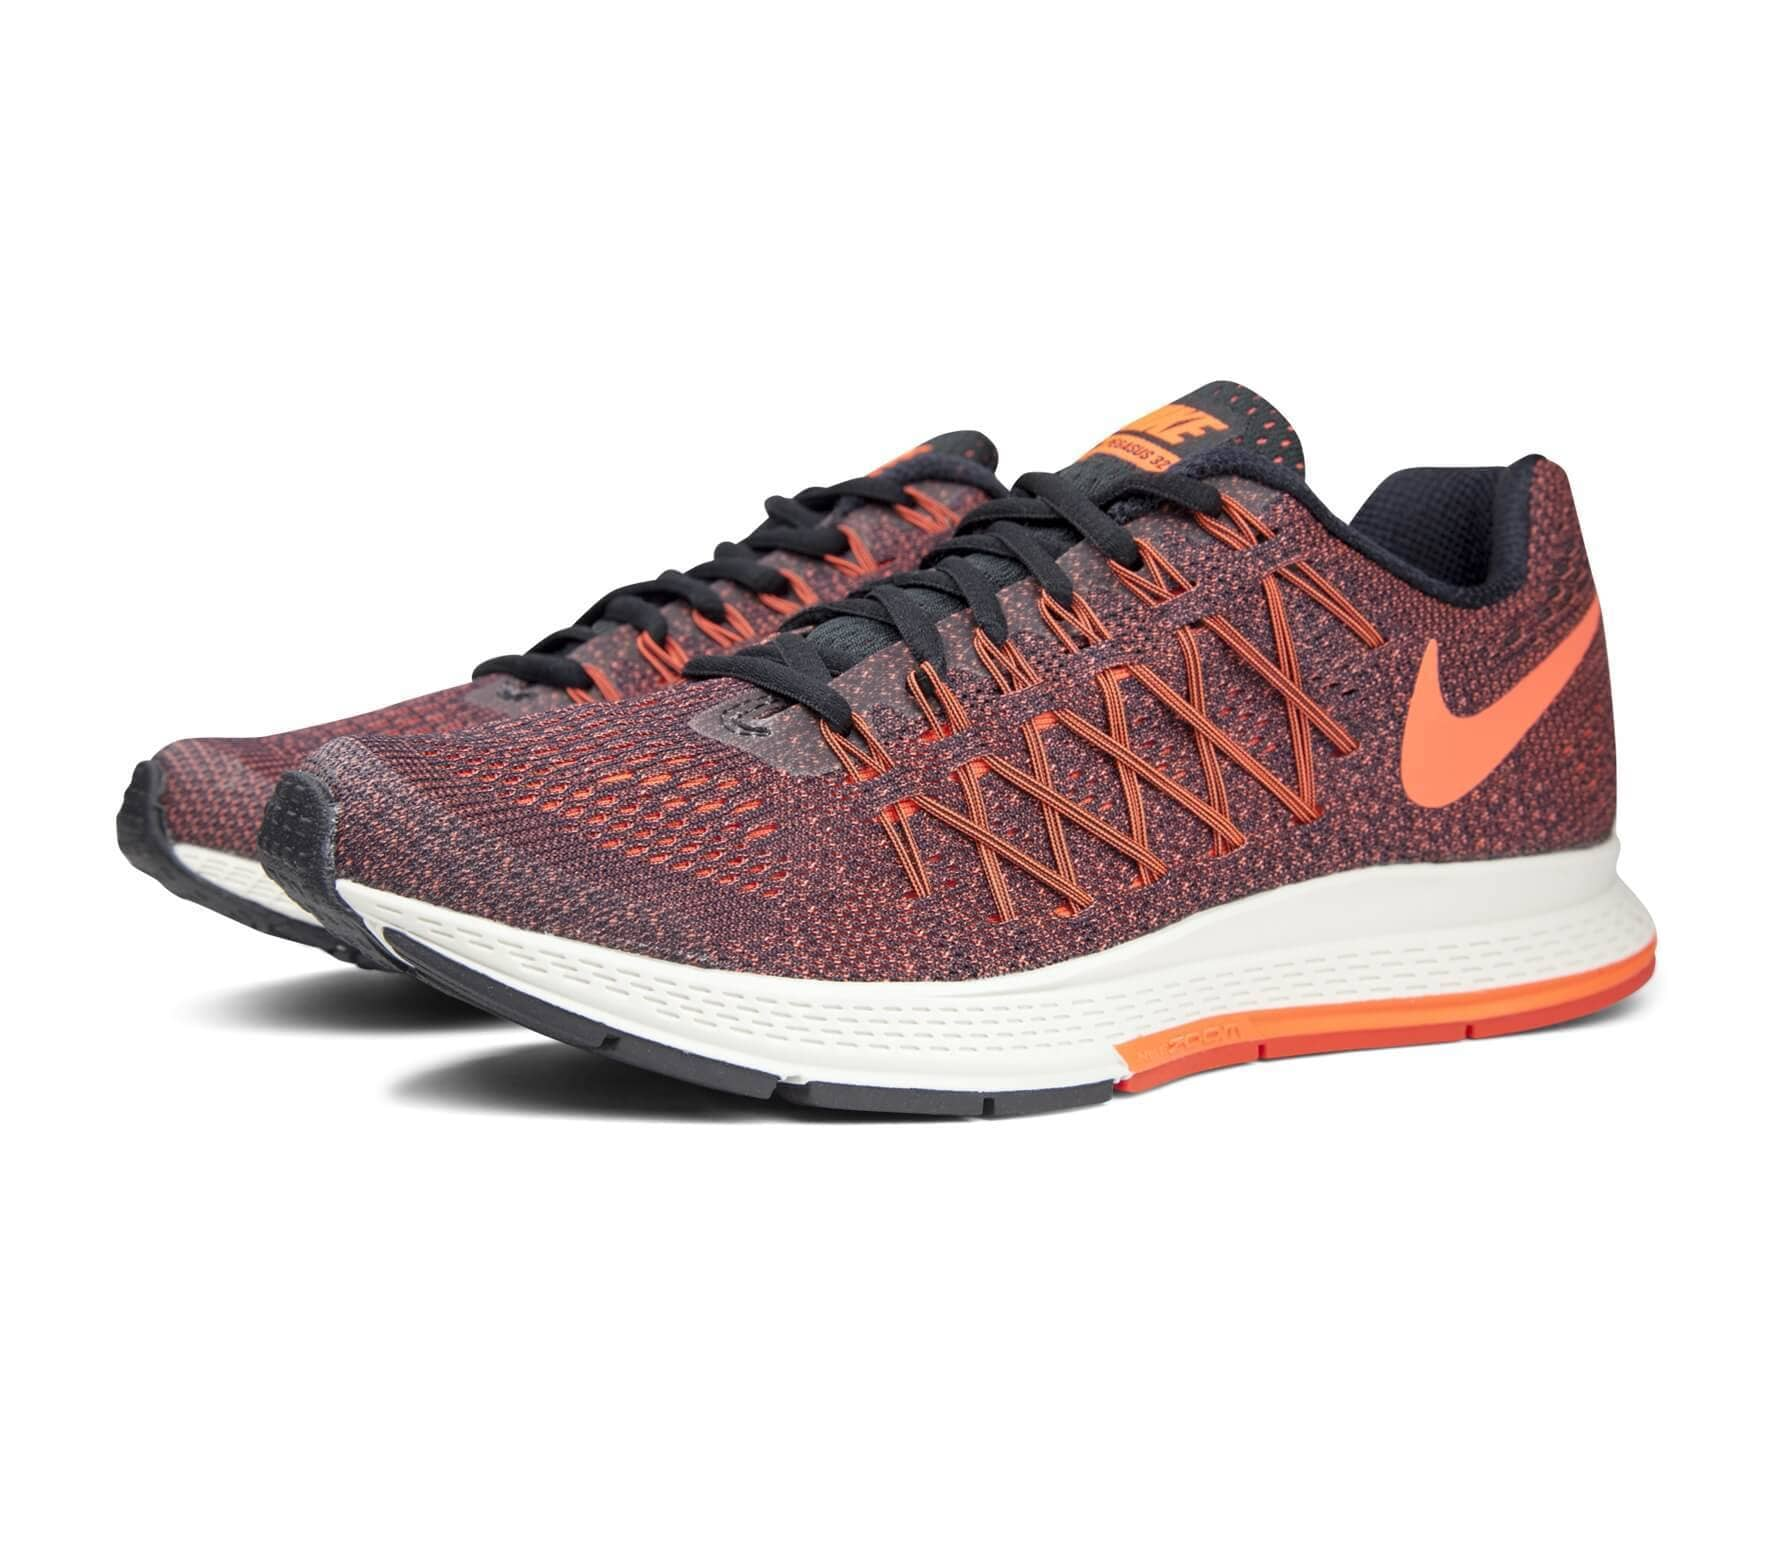 dc7beb953 Nike - Air Zoom Pegasus 32 women s running shoes (black orange ...